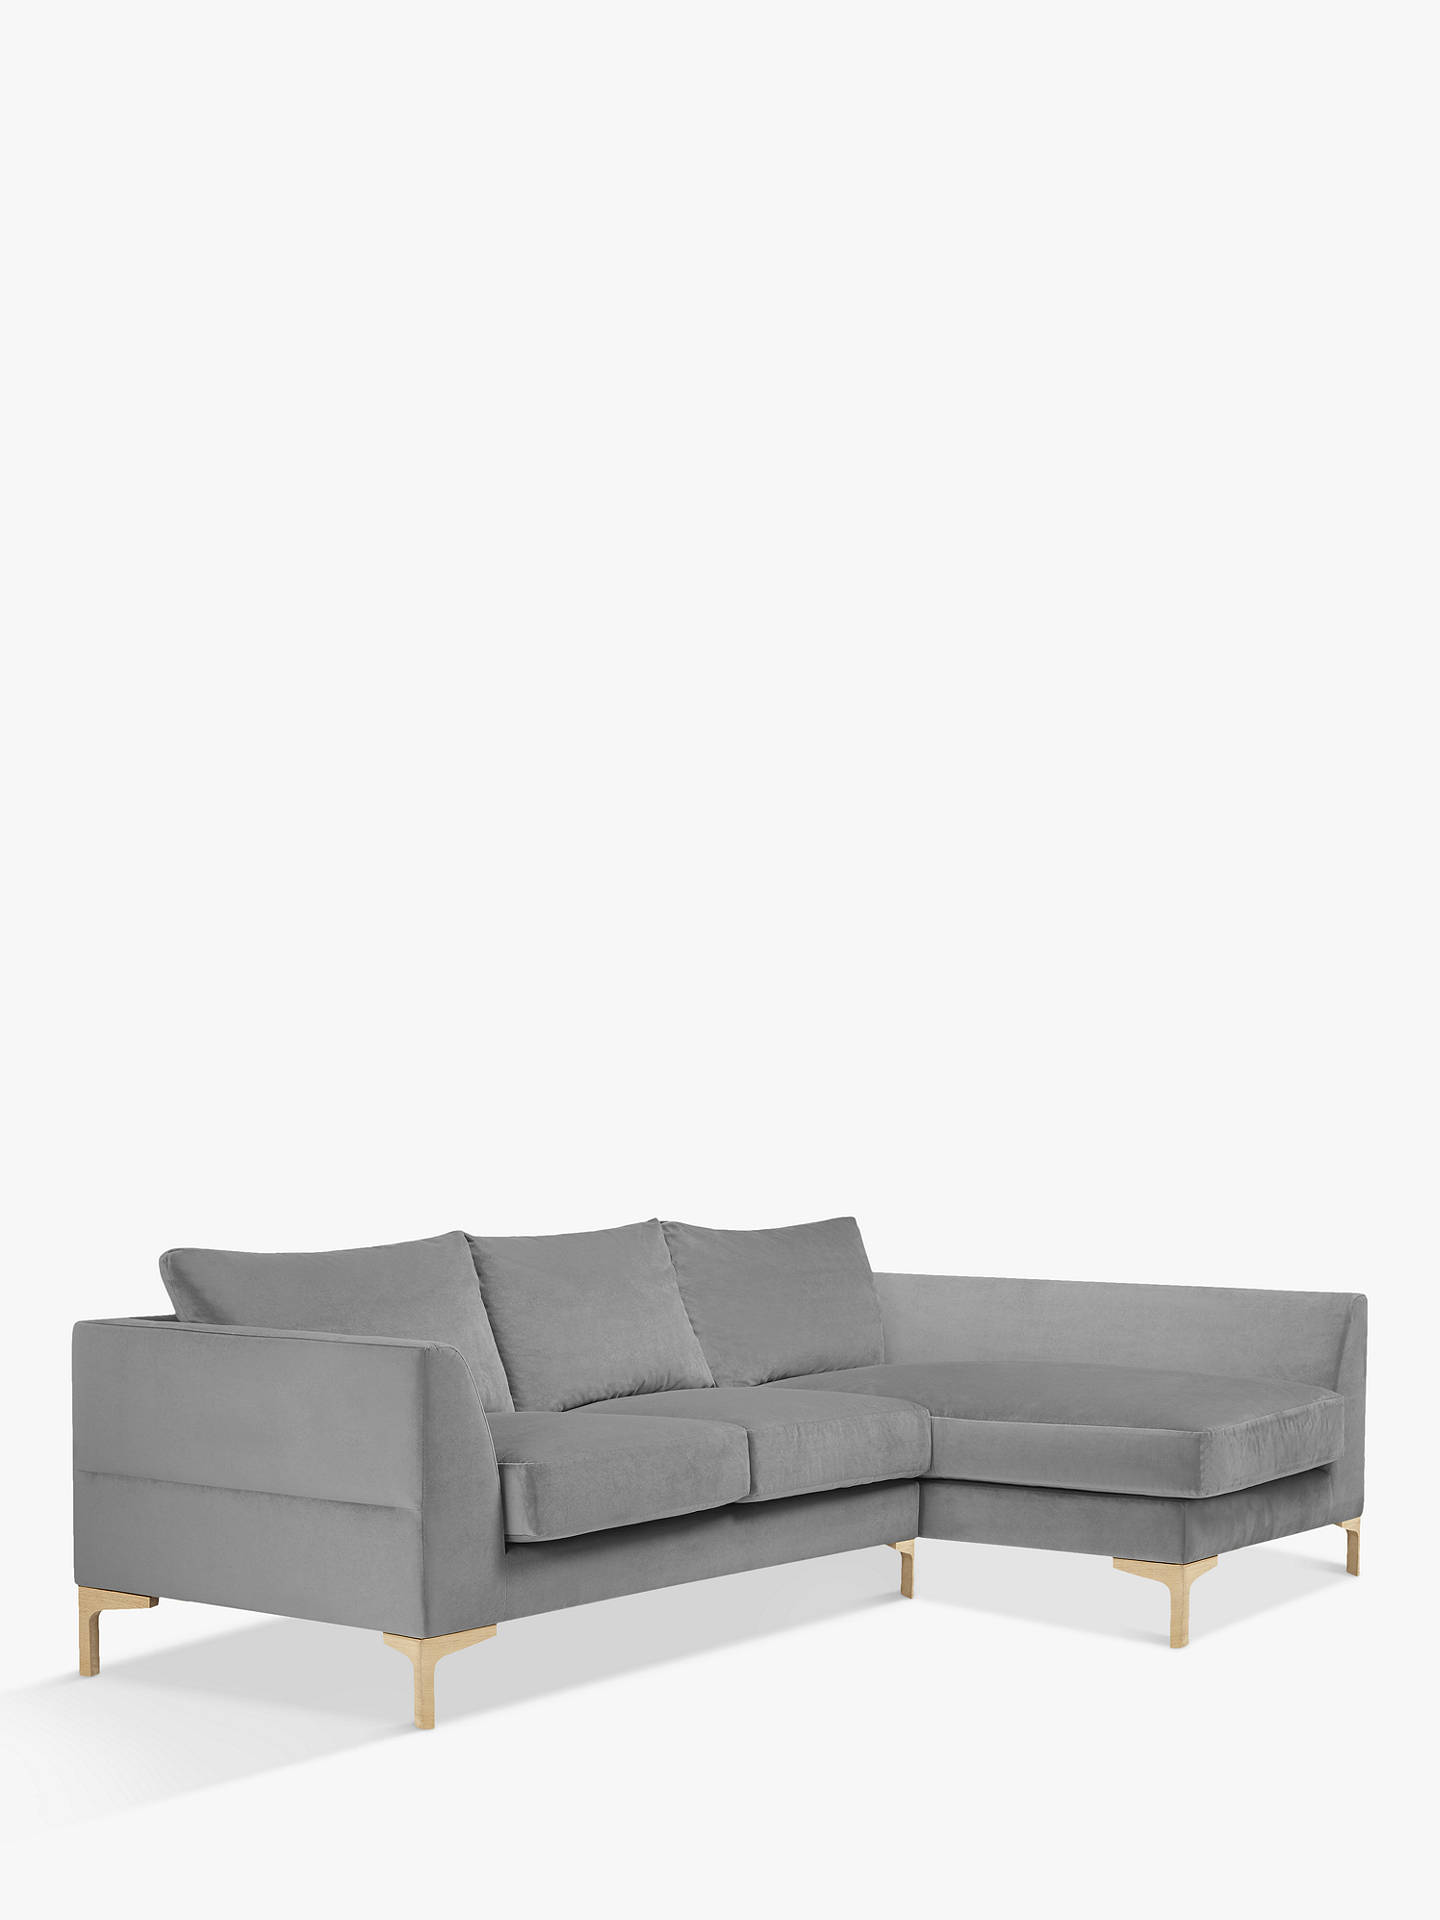 John Lewis & Partners Belgrave RHF Chaise End Sofa